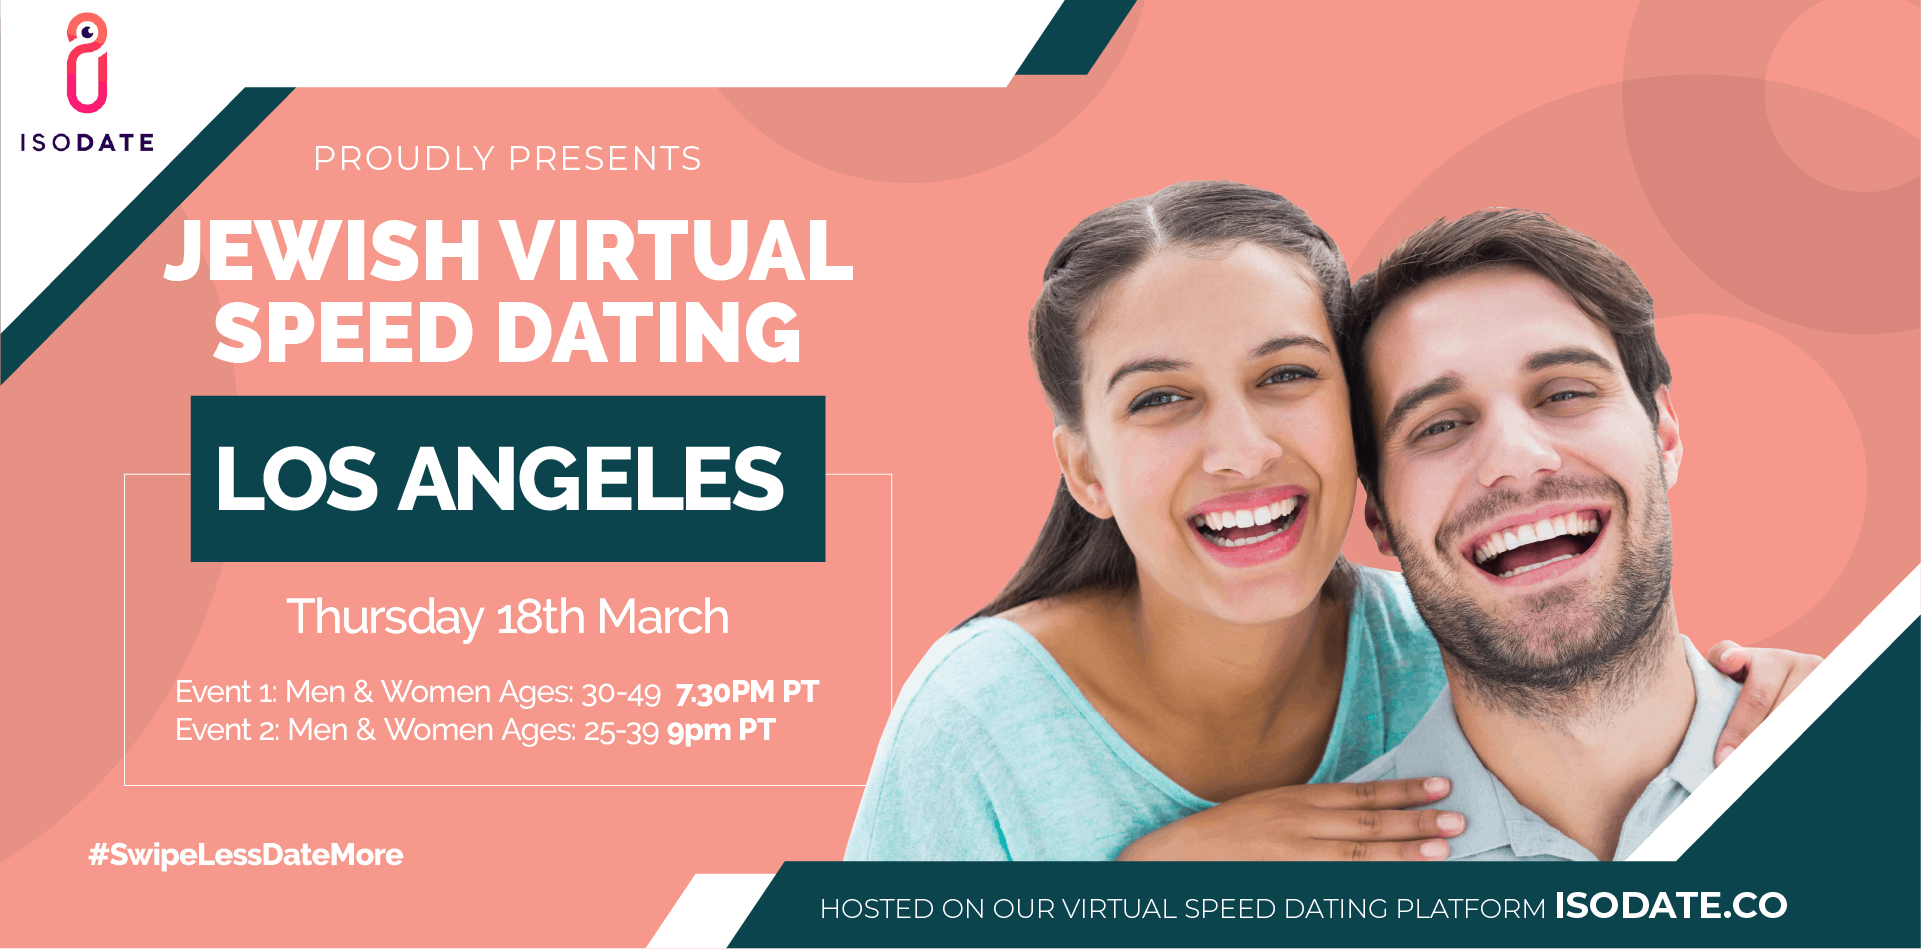 Isodate's Los Angeles Jewish Virtual Speed Dating - Swipe Less, Date More